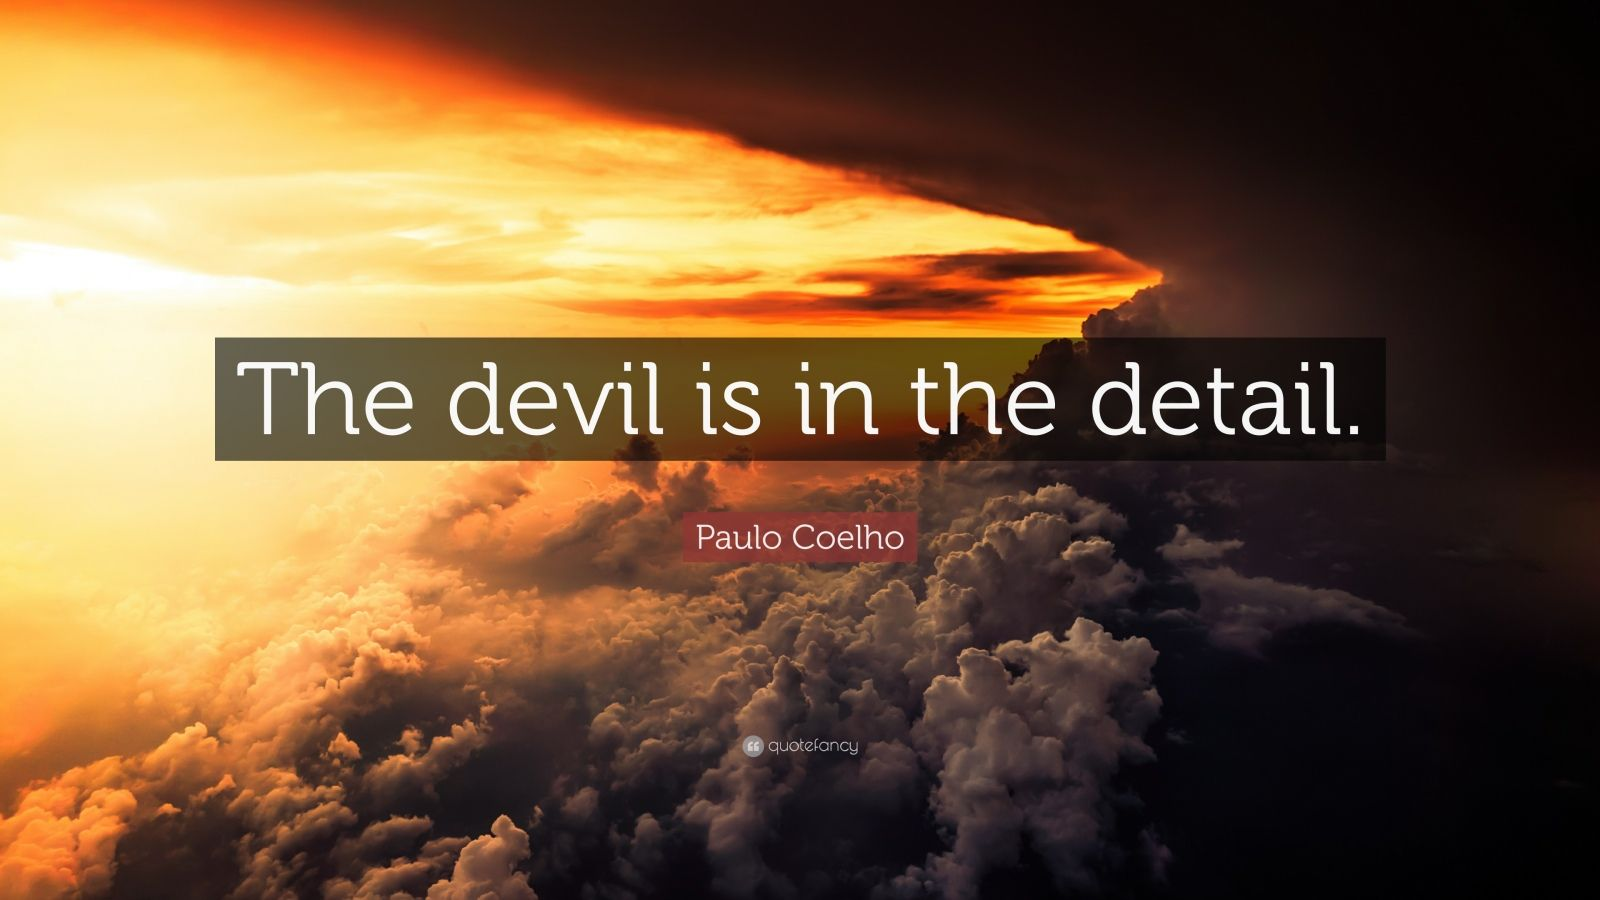 Life Success Quotes Hd Wallpapers Paulo Coelho Quote The Devil Is In The Detail 12